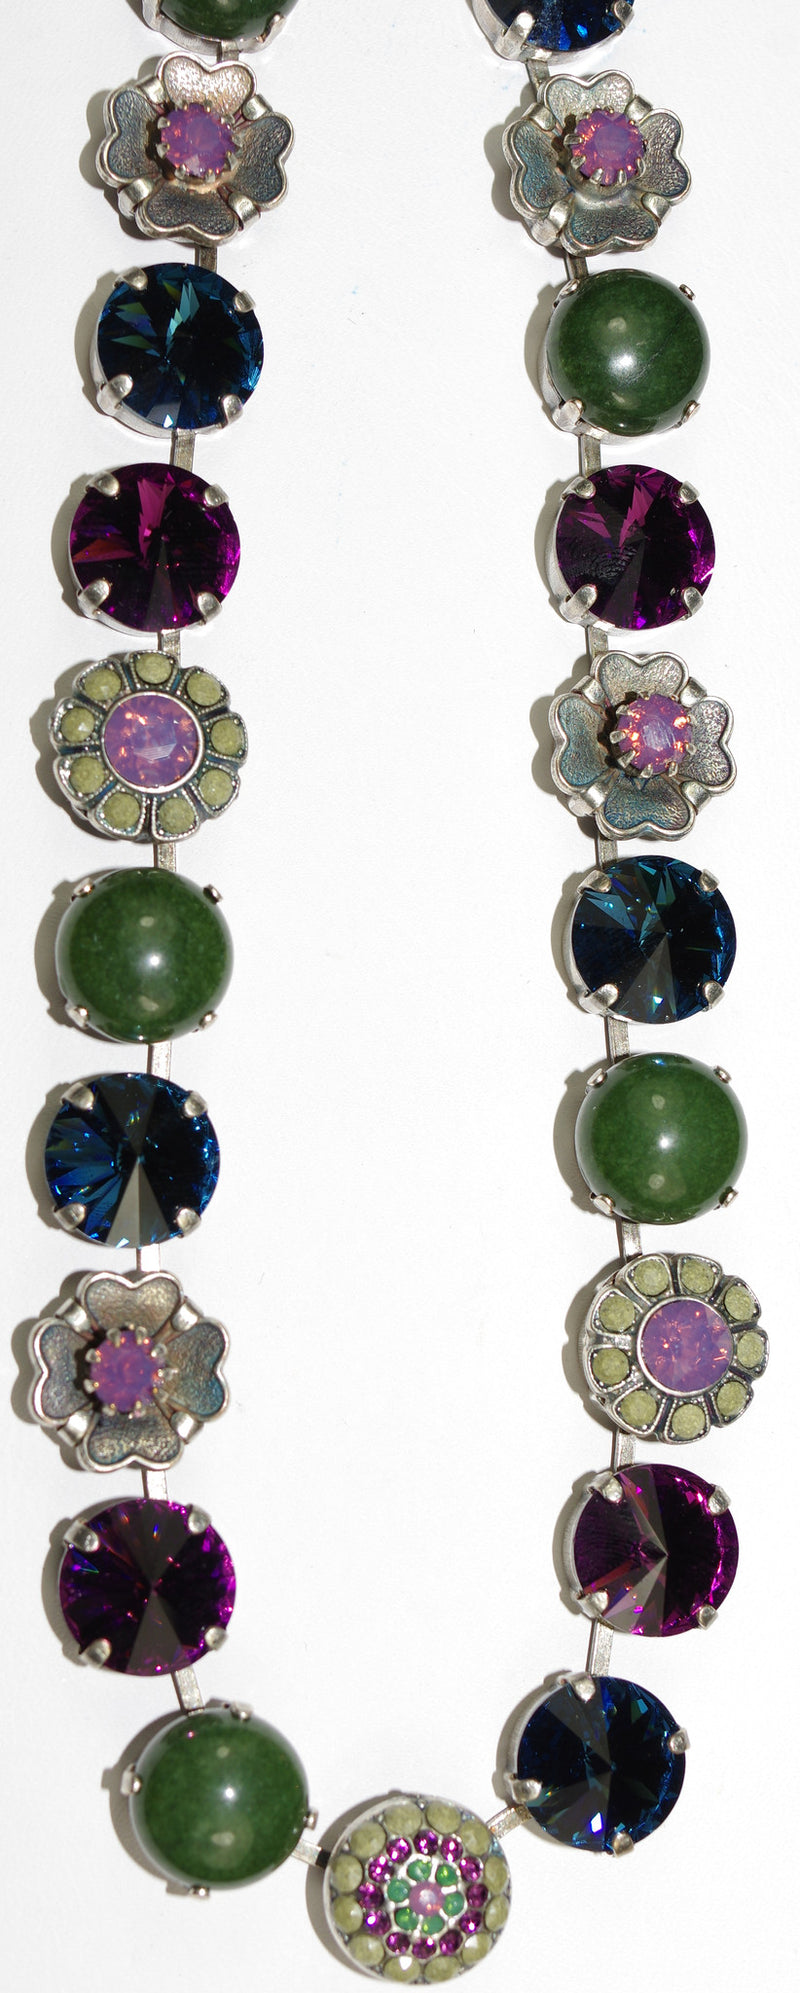 "MARIANA NECKLACE PATIENCE: purple, green, blue, grey stones in silver setting, 18"" adjustable chain"